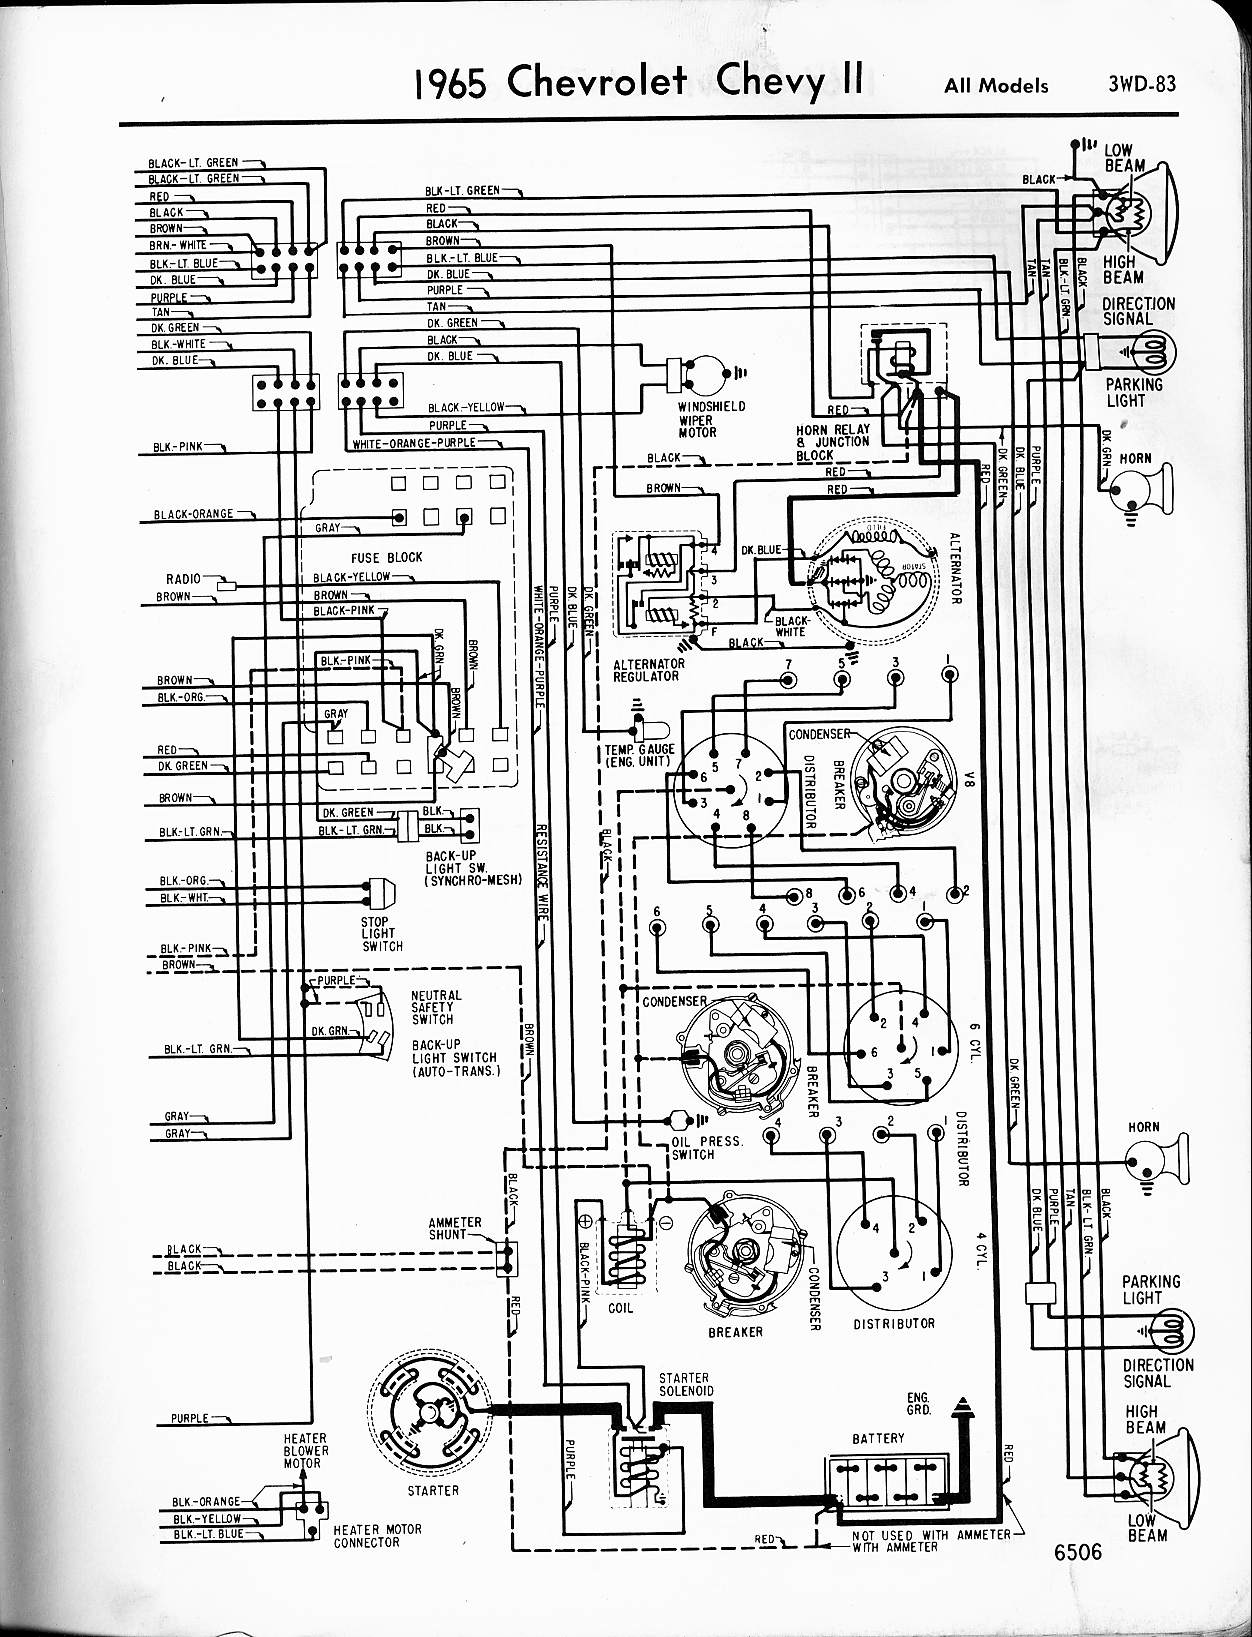 MWireChev65_3WD 083 chevy diagrams chevrolet ignition wiring diagram at mifinder.co